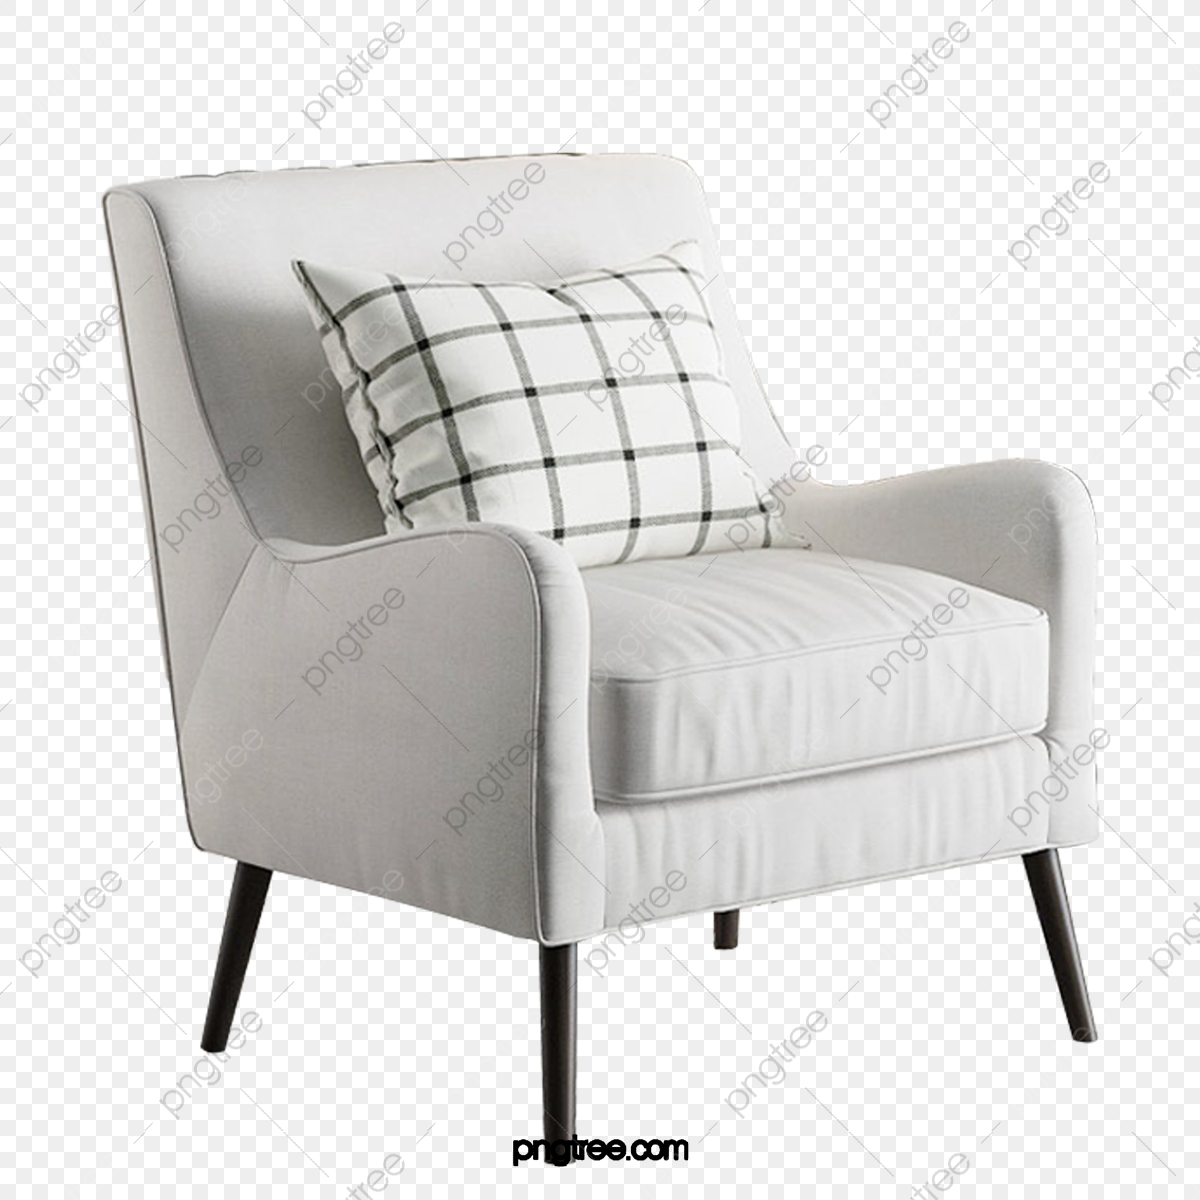 Square Mesh Pillow On White Sofa Chair White Sofa Chair